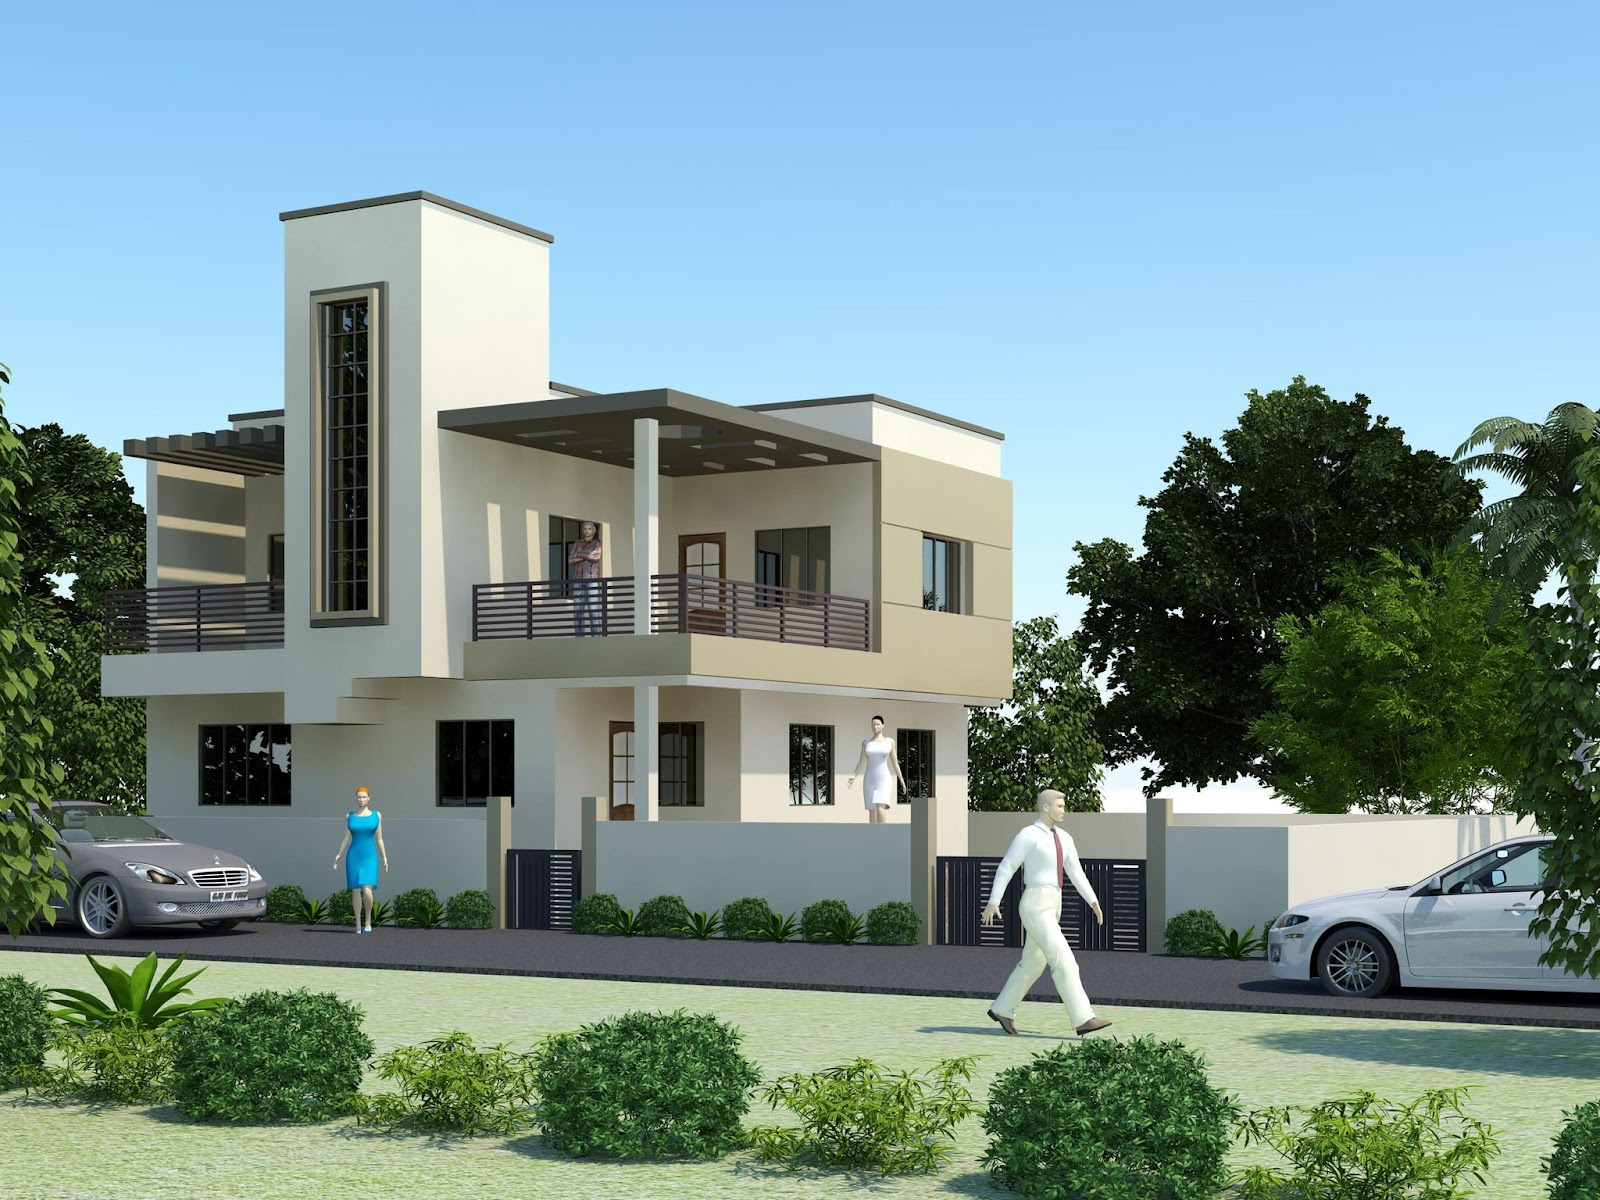 Modern homes exterior designs front views pictures for External design house